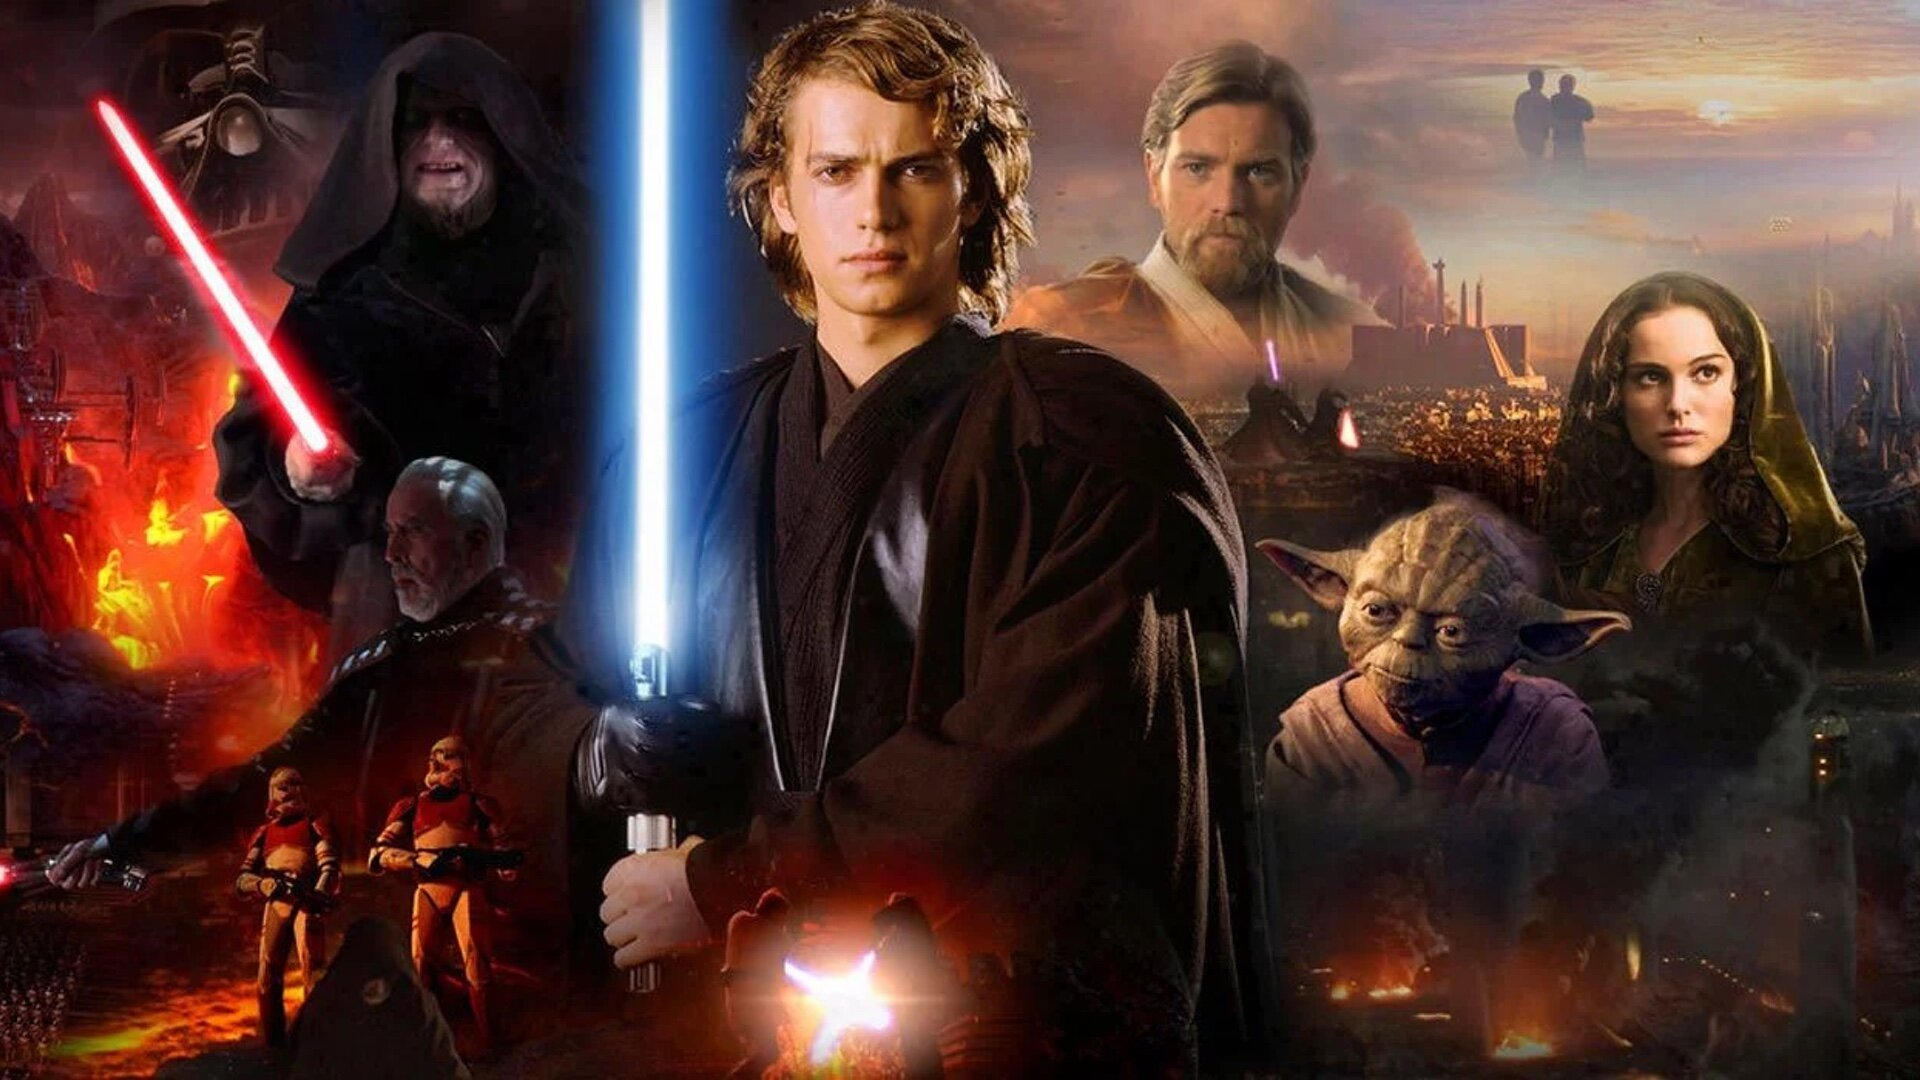 Star Wars Revenge Of The Sith Beats Avengers Endgame In Rotten Tomatoes Summer Movie Poll Geektyrant